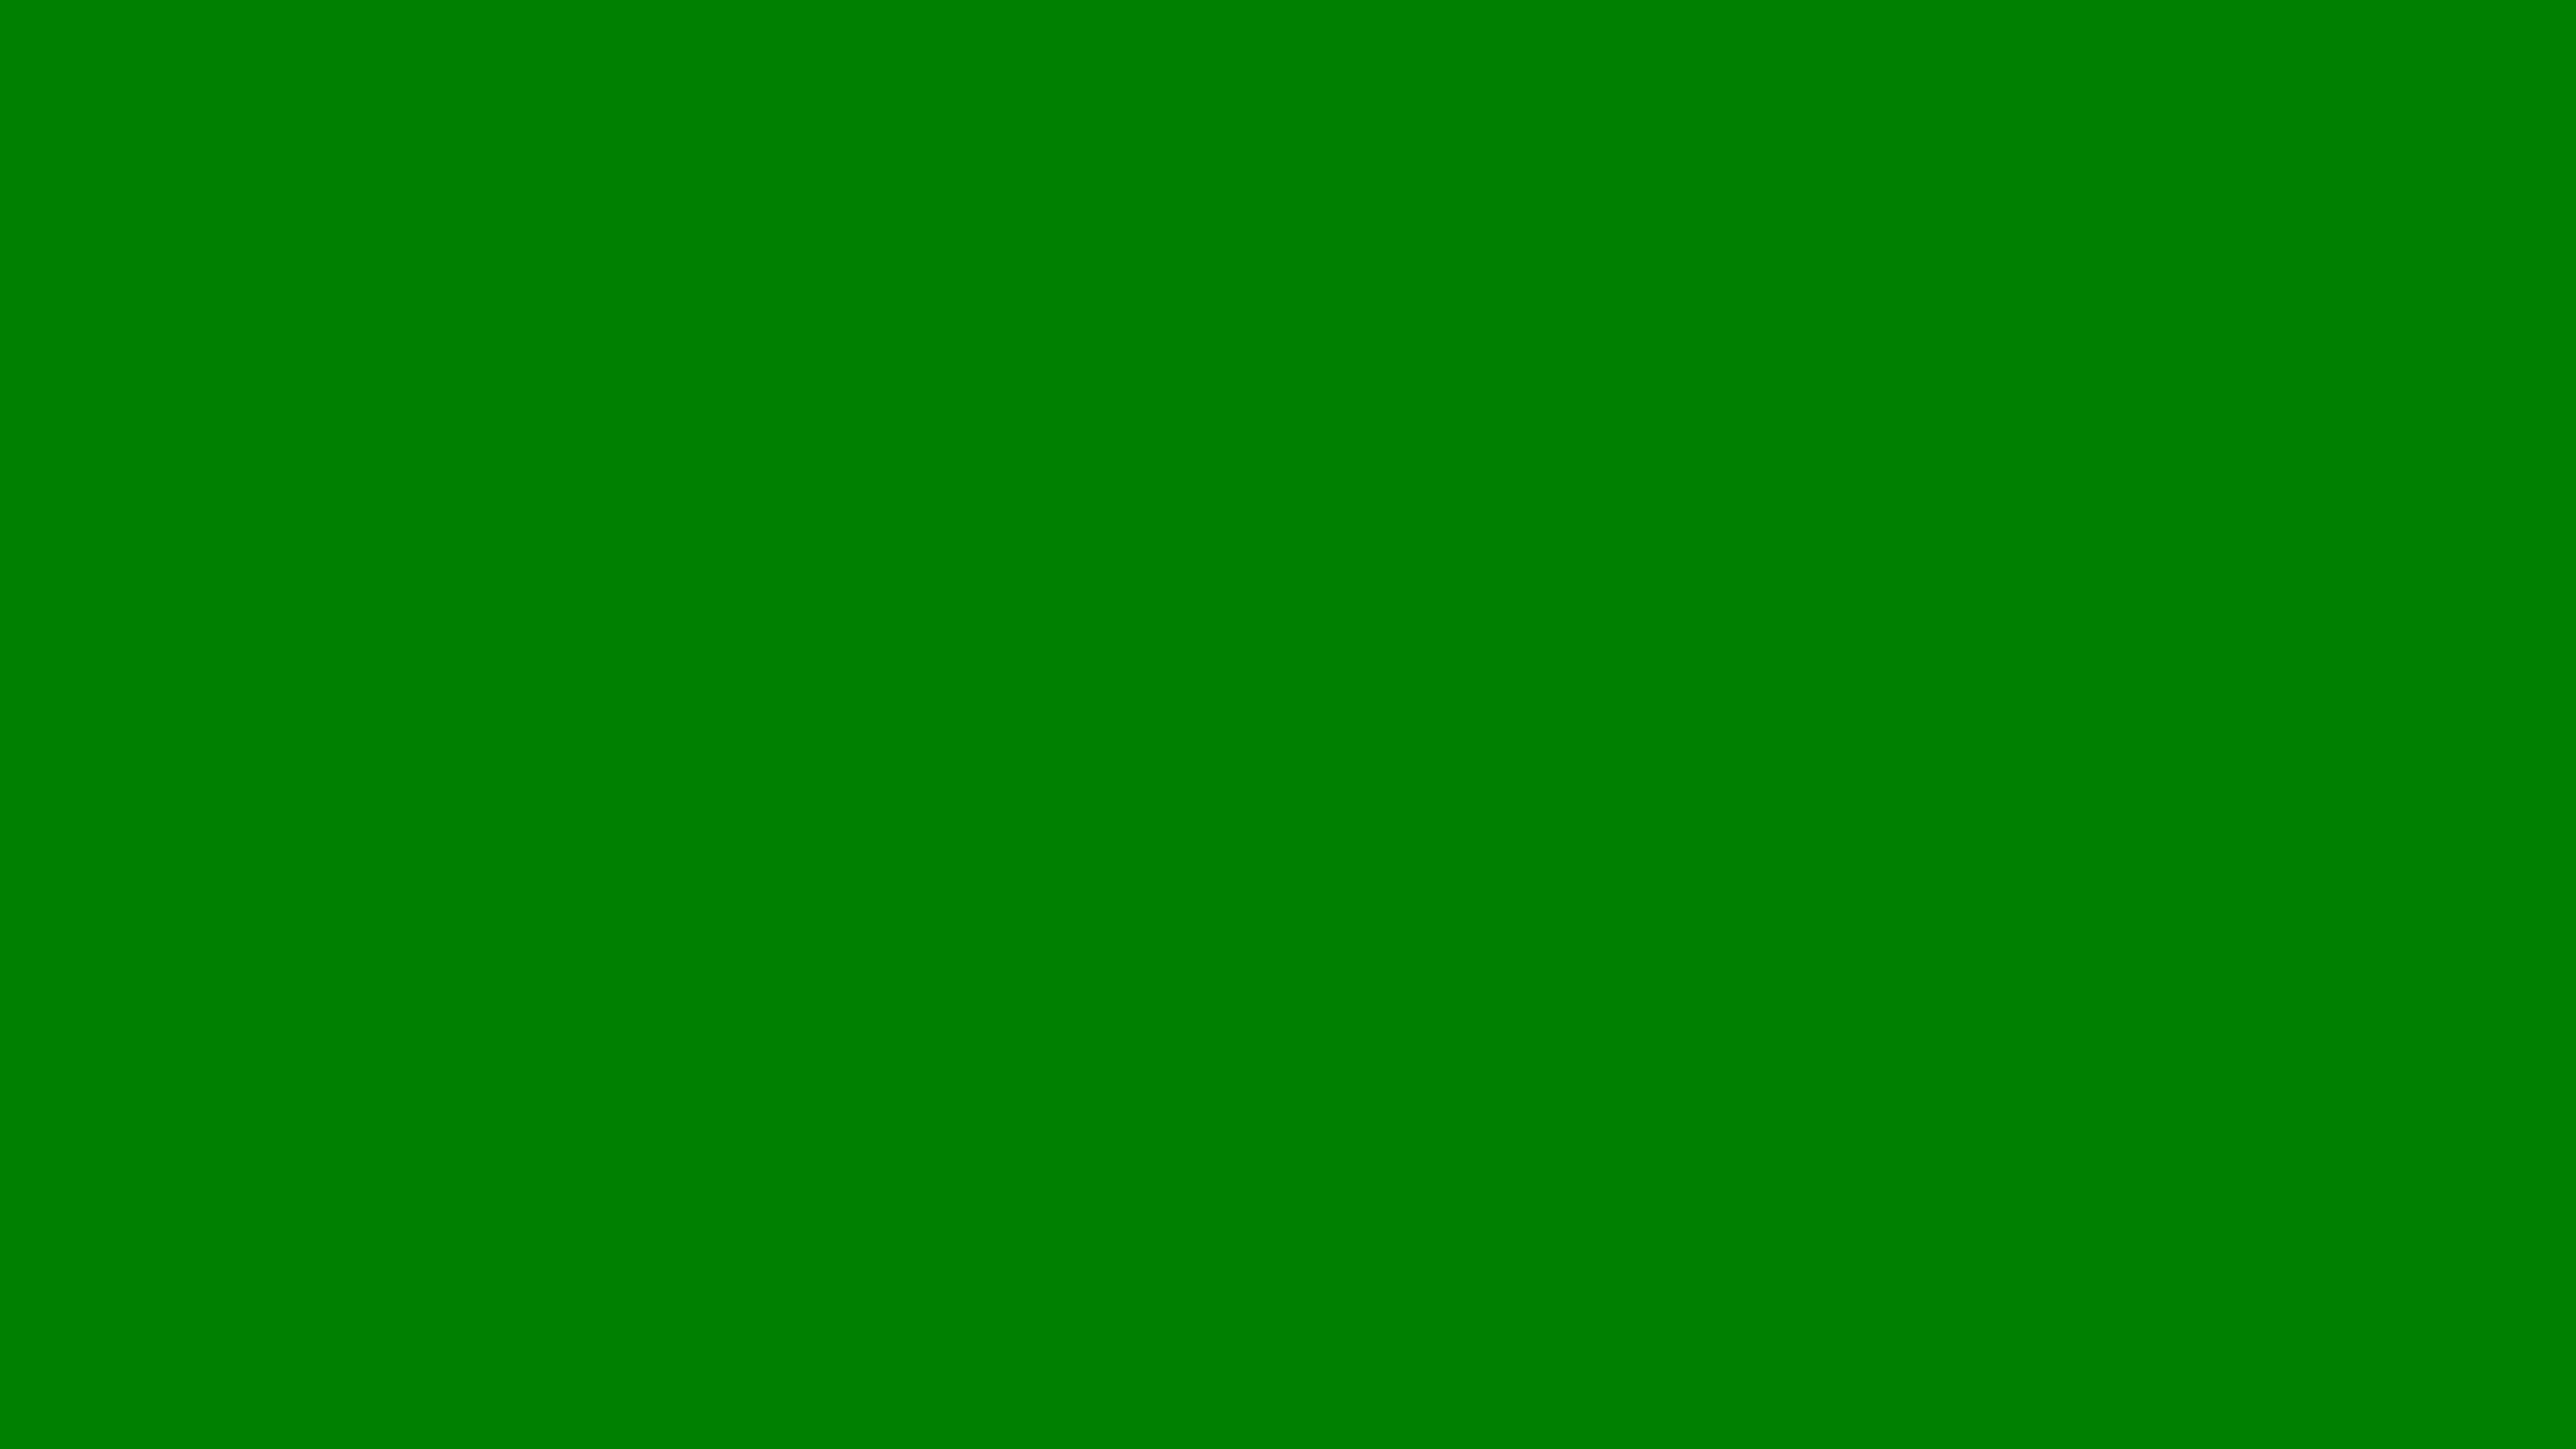 3840x2160 Office Green Solid Color Background